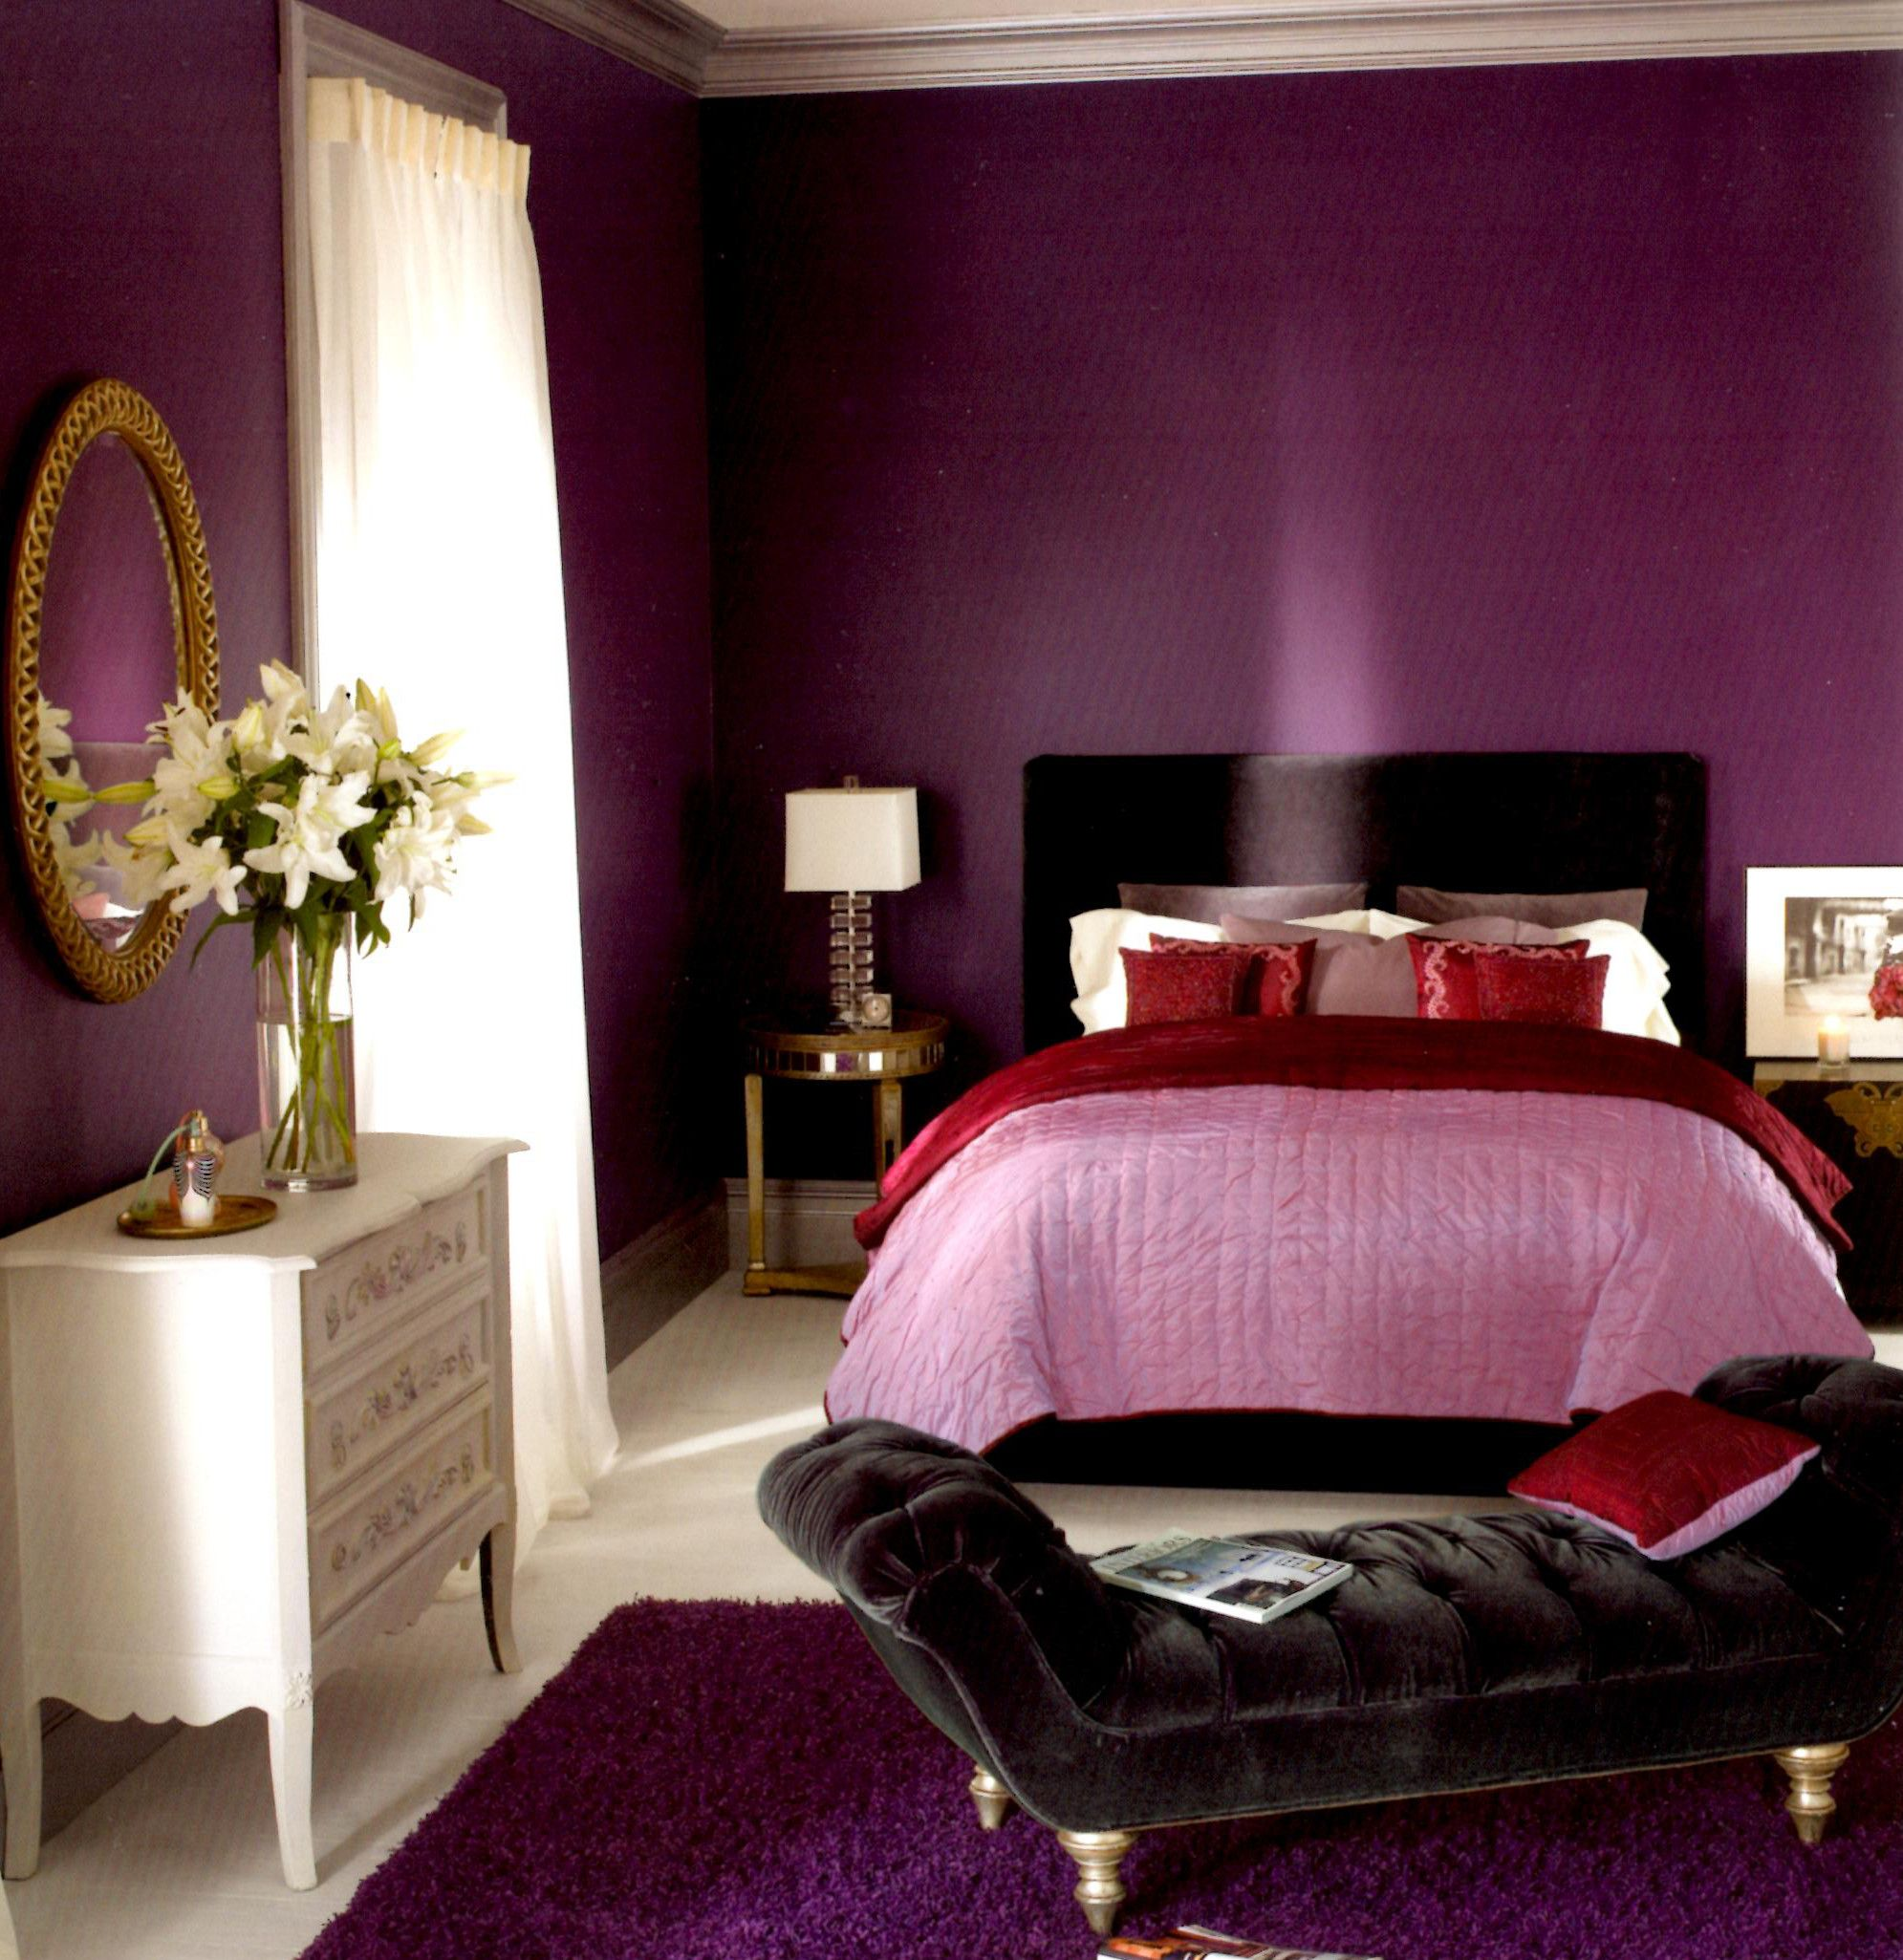 Paint colors for bedrooms purple - Remarkable Purple Wall Paneling Colors As Smart Bedroom Paint Ideas In Teenage Bedroom Decor Also White